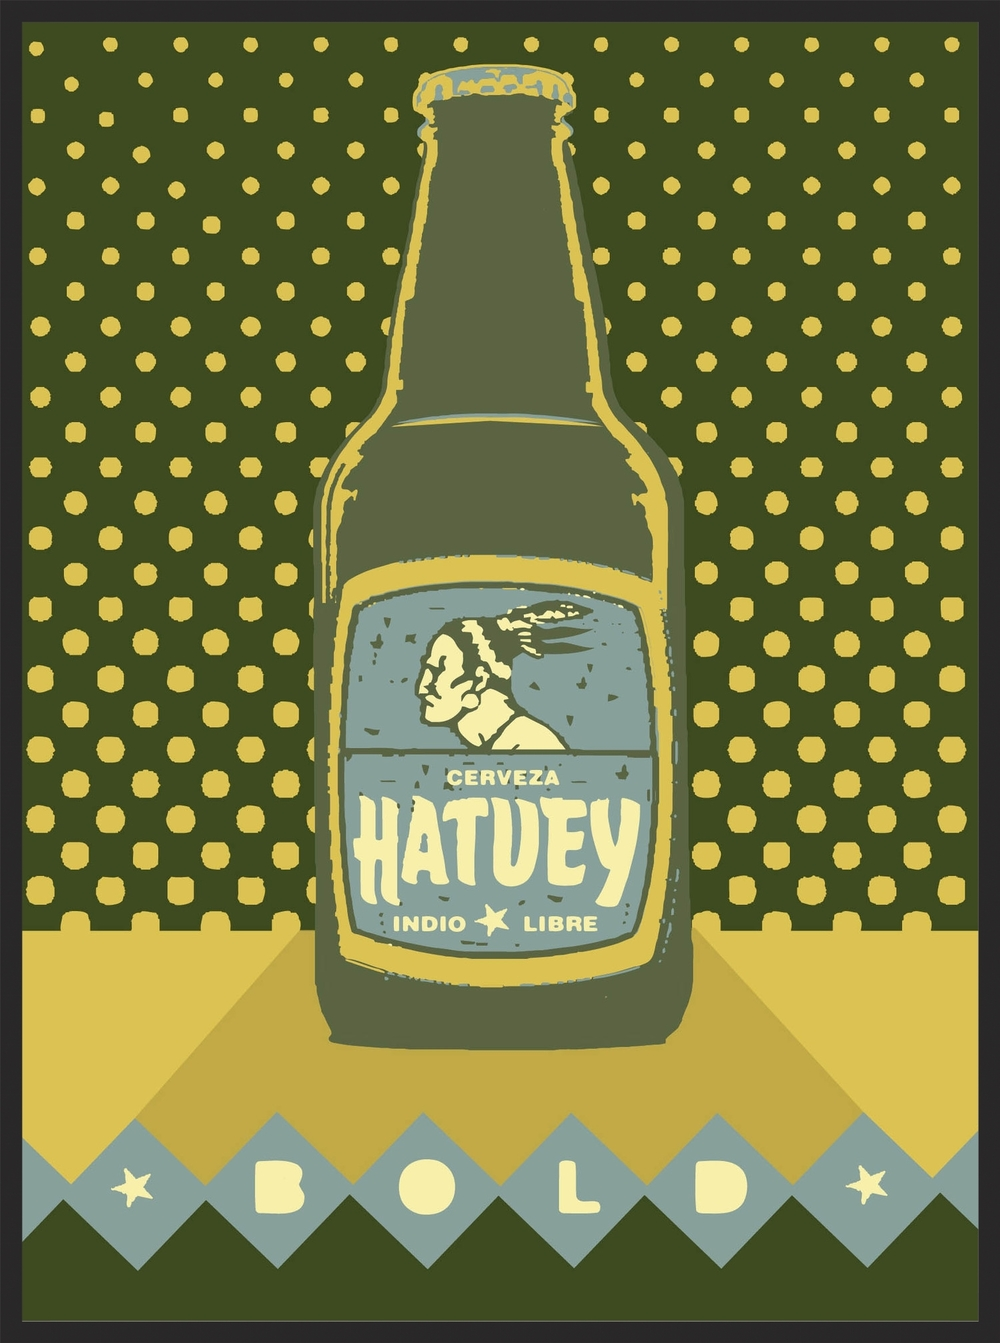 Hatuey Bold  |  Unframed $180  |  Shadow box framed $375  |  archival inkjet print  |  16x20 inch